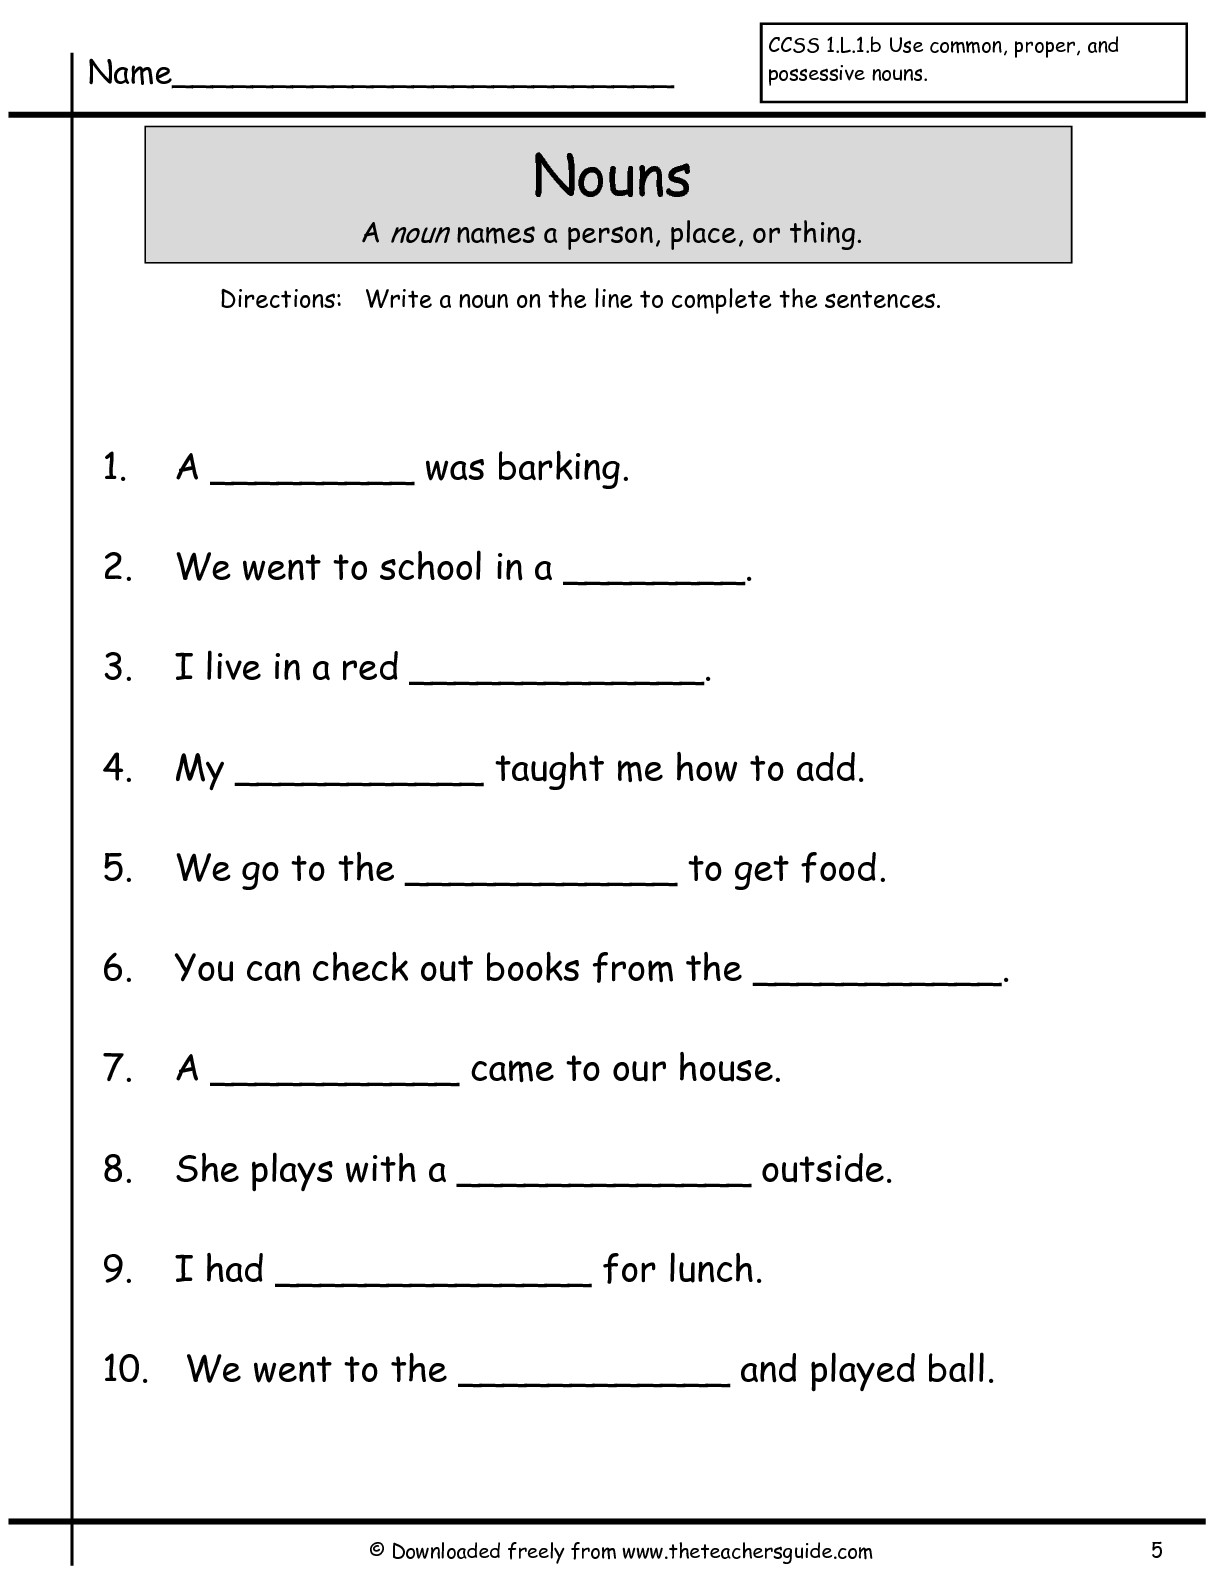 hight resolution of Science Worksheet Grade 6 Wonders Of The Living World   Printable Worksheets  and Activities for Teachers